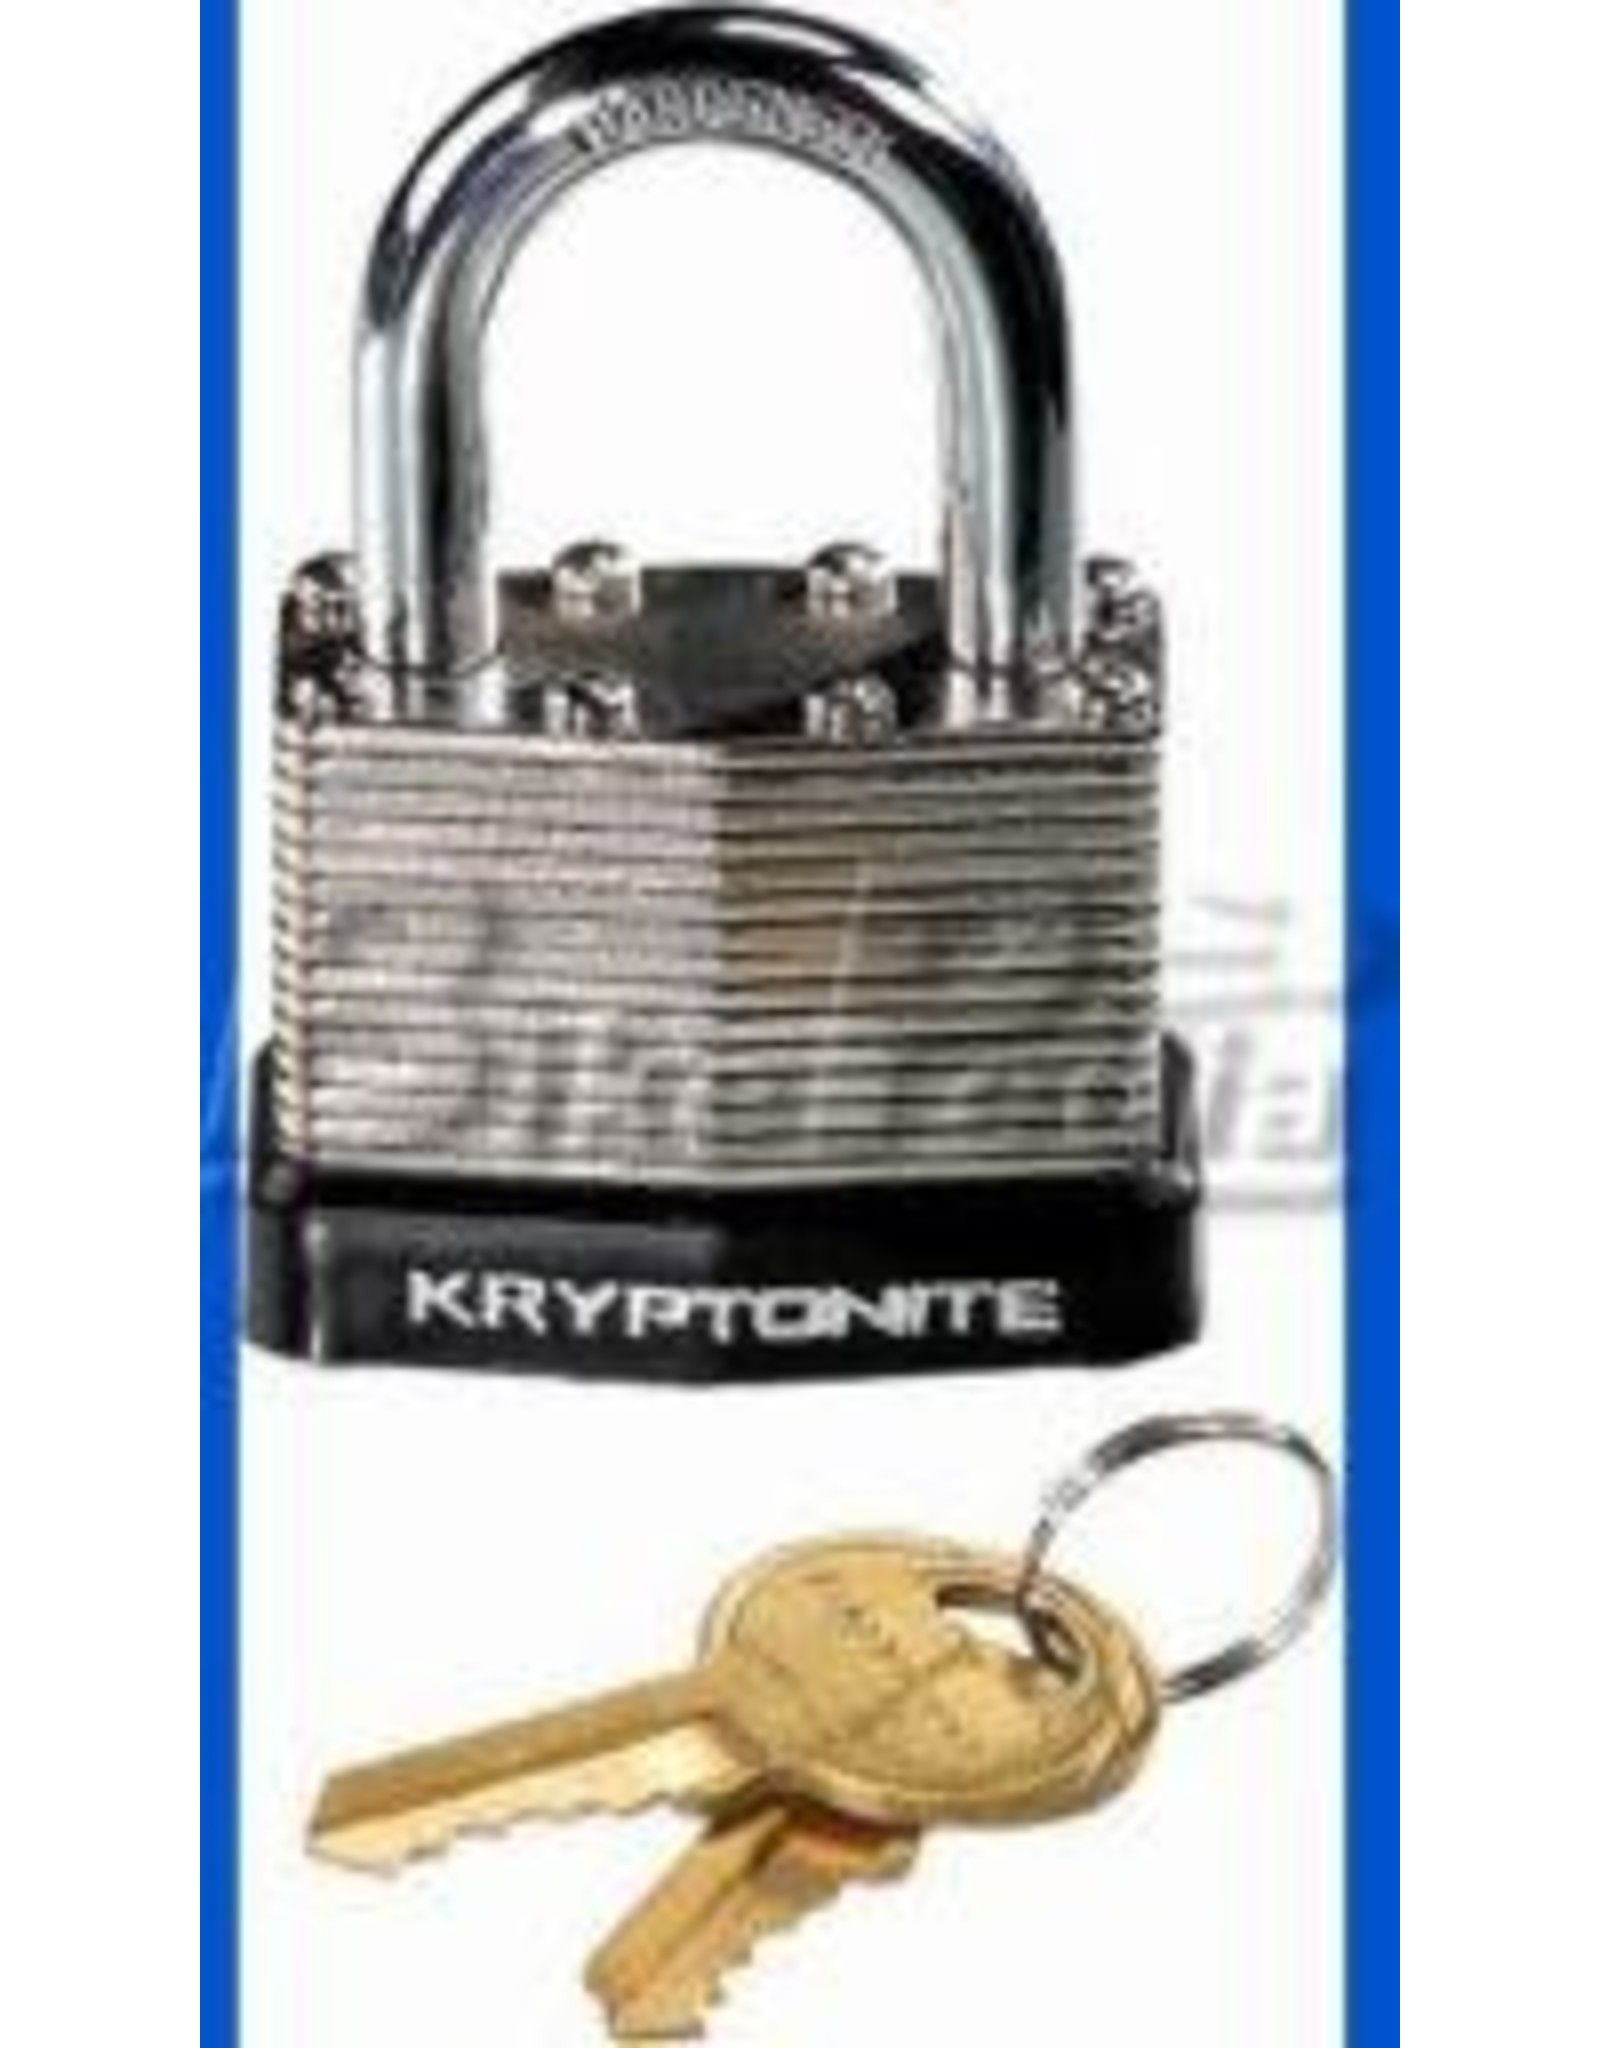 Kryptonite Kryptonite ,44mm lock size - lock Pad Lock